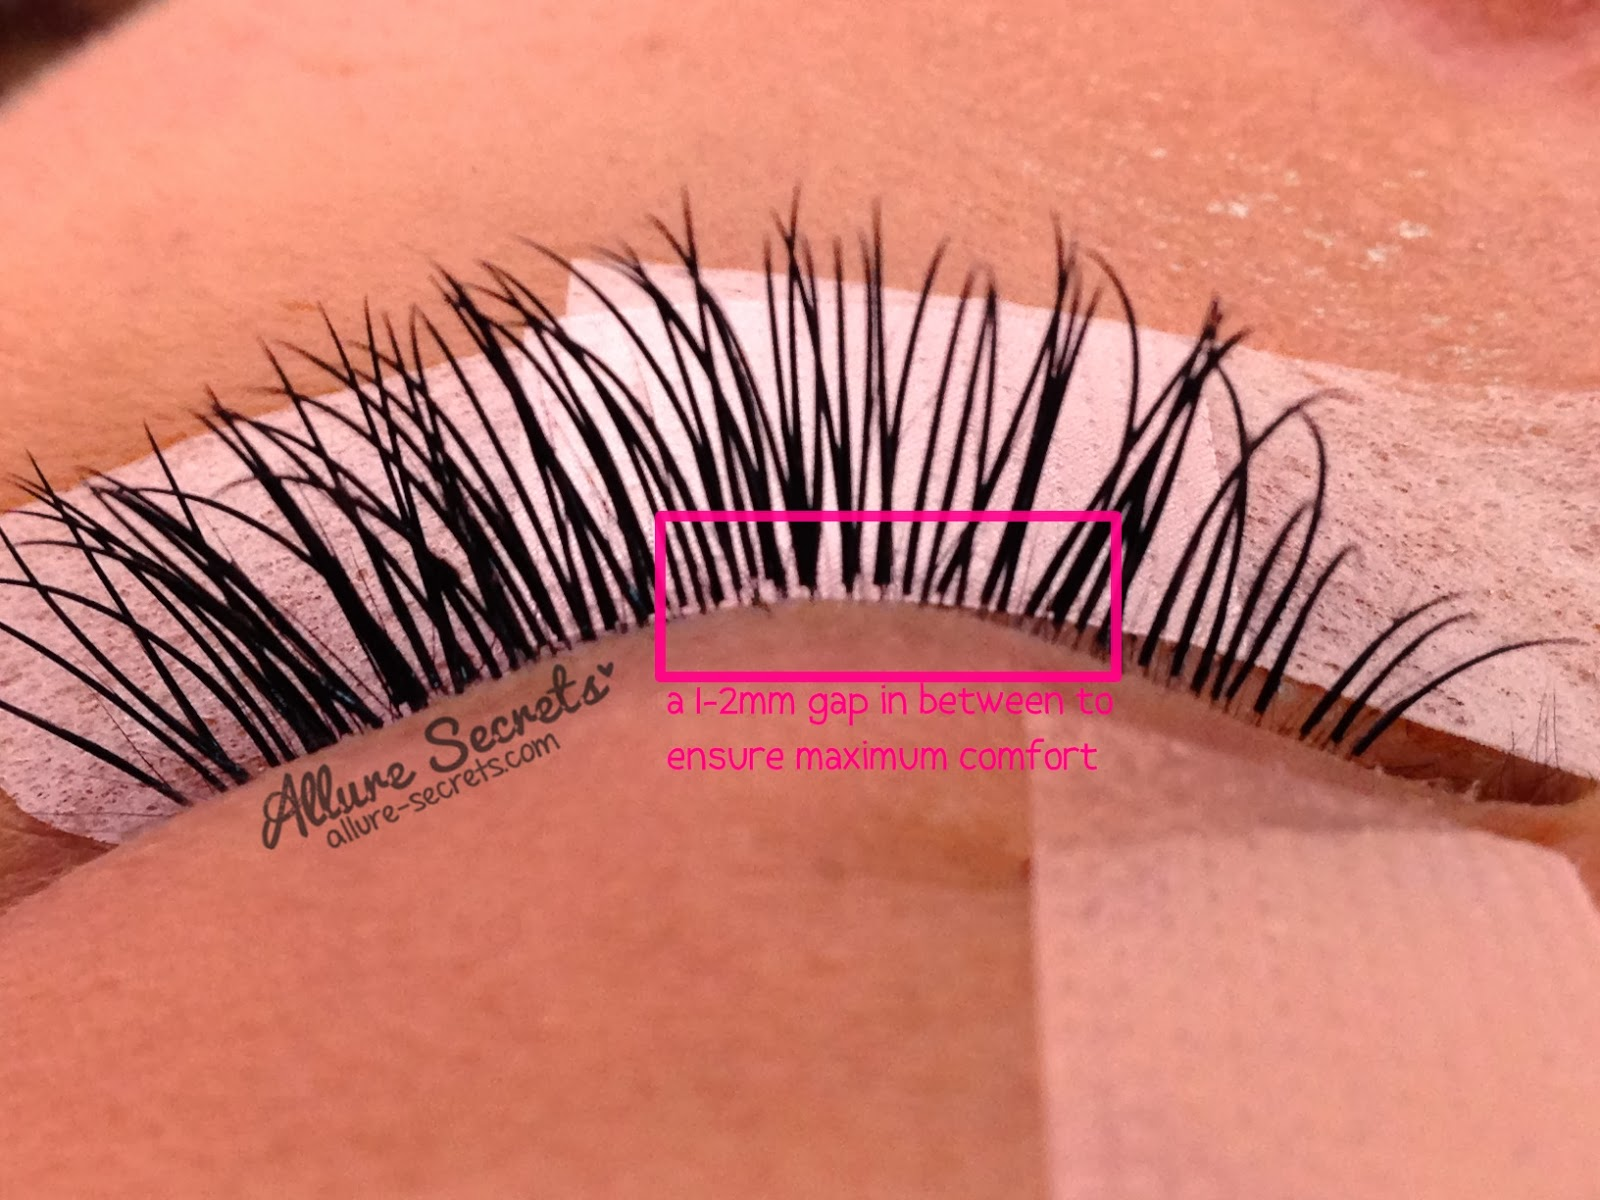 Allure Secrets Professional Eyelash Extension In Singapore